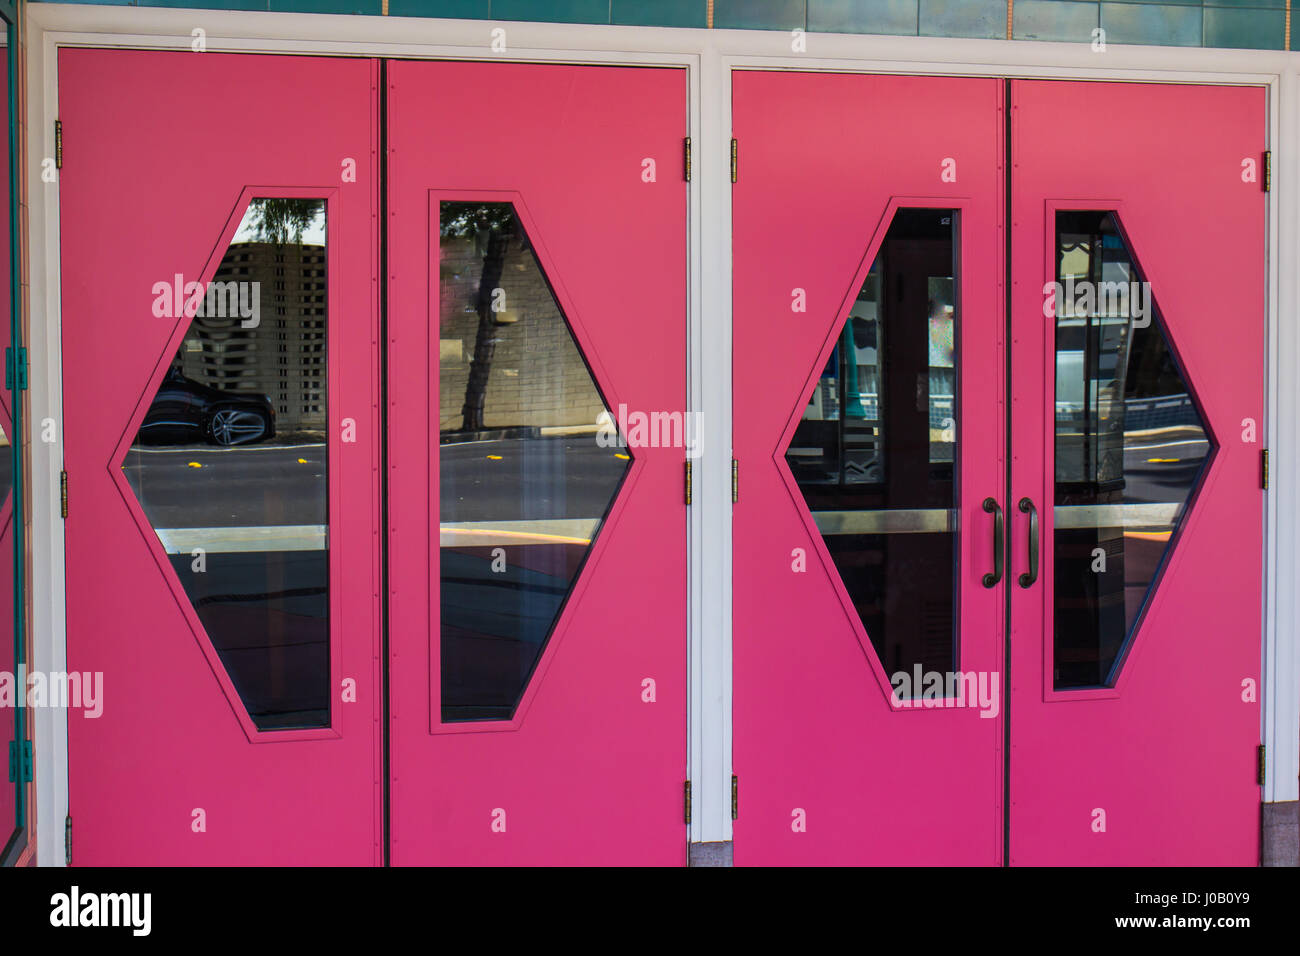 Bright Pink Doors With Glass Window Cutouts - Stock Image